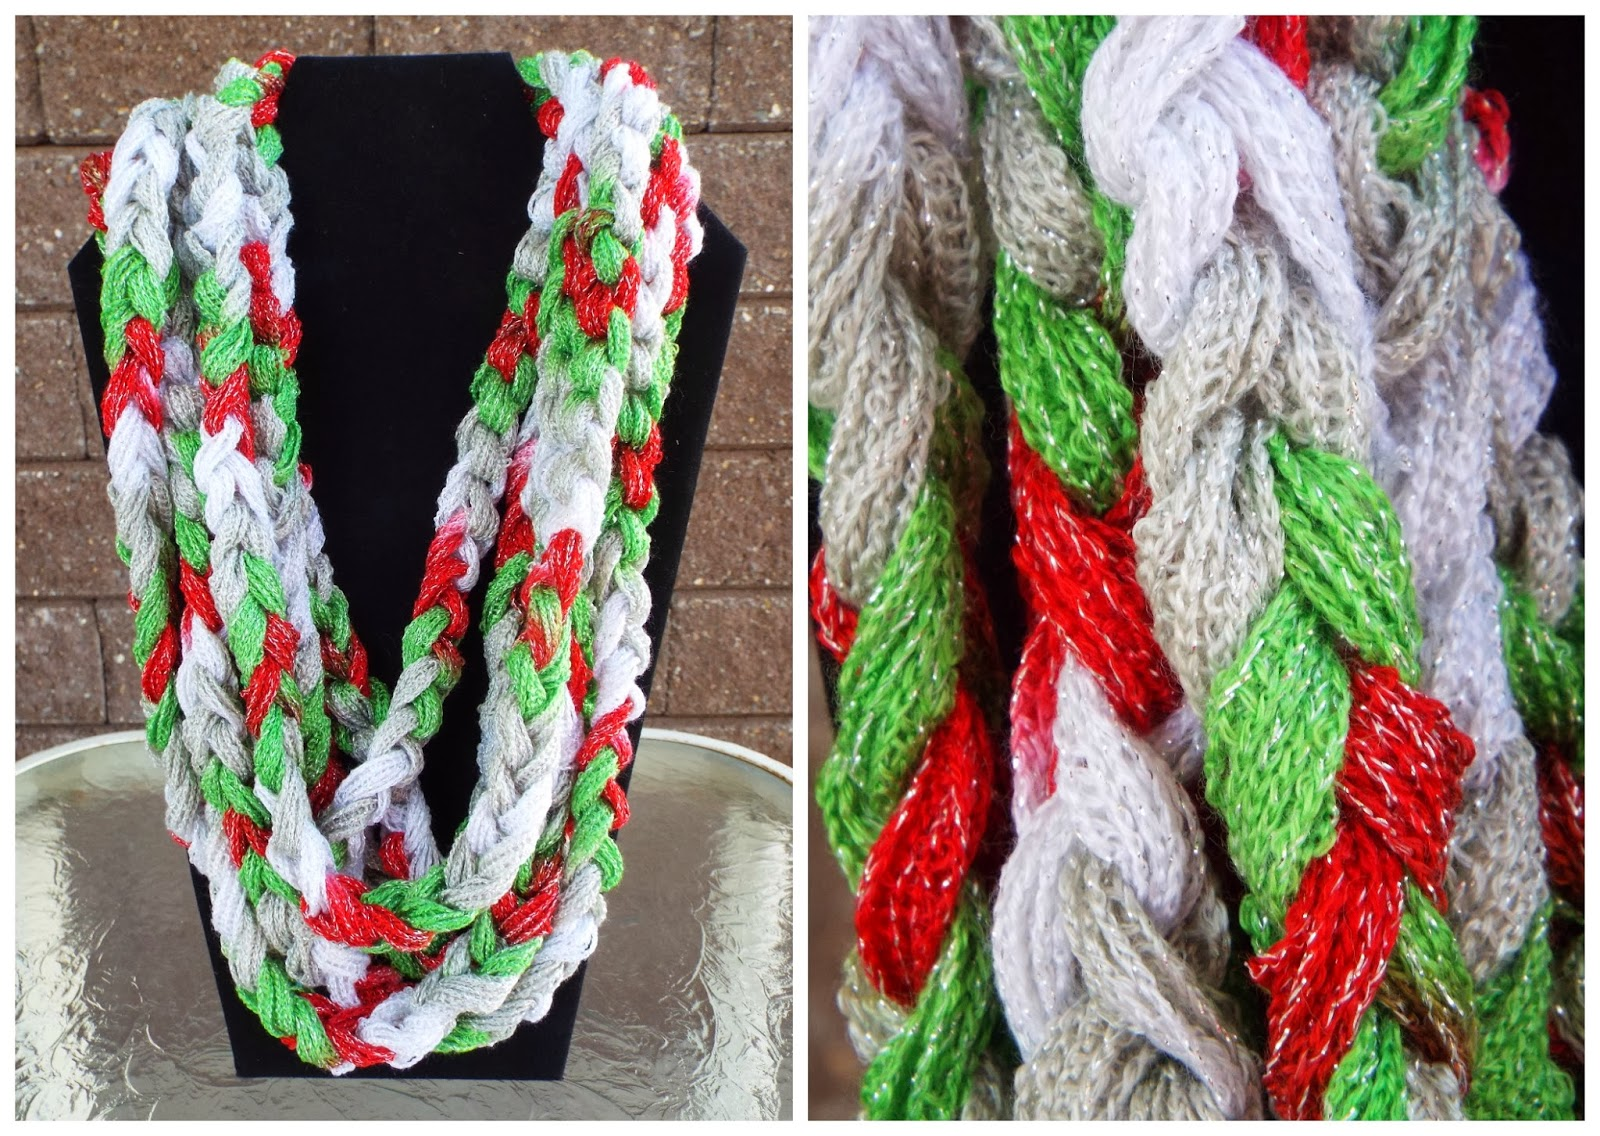 Crochet Scarf Patterns Using Q Hook : Hooks Happenings: Some crochet projects